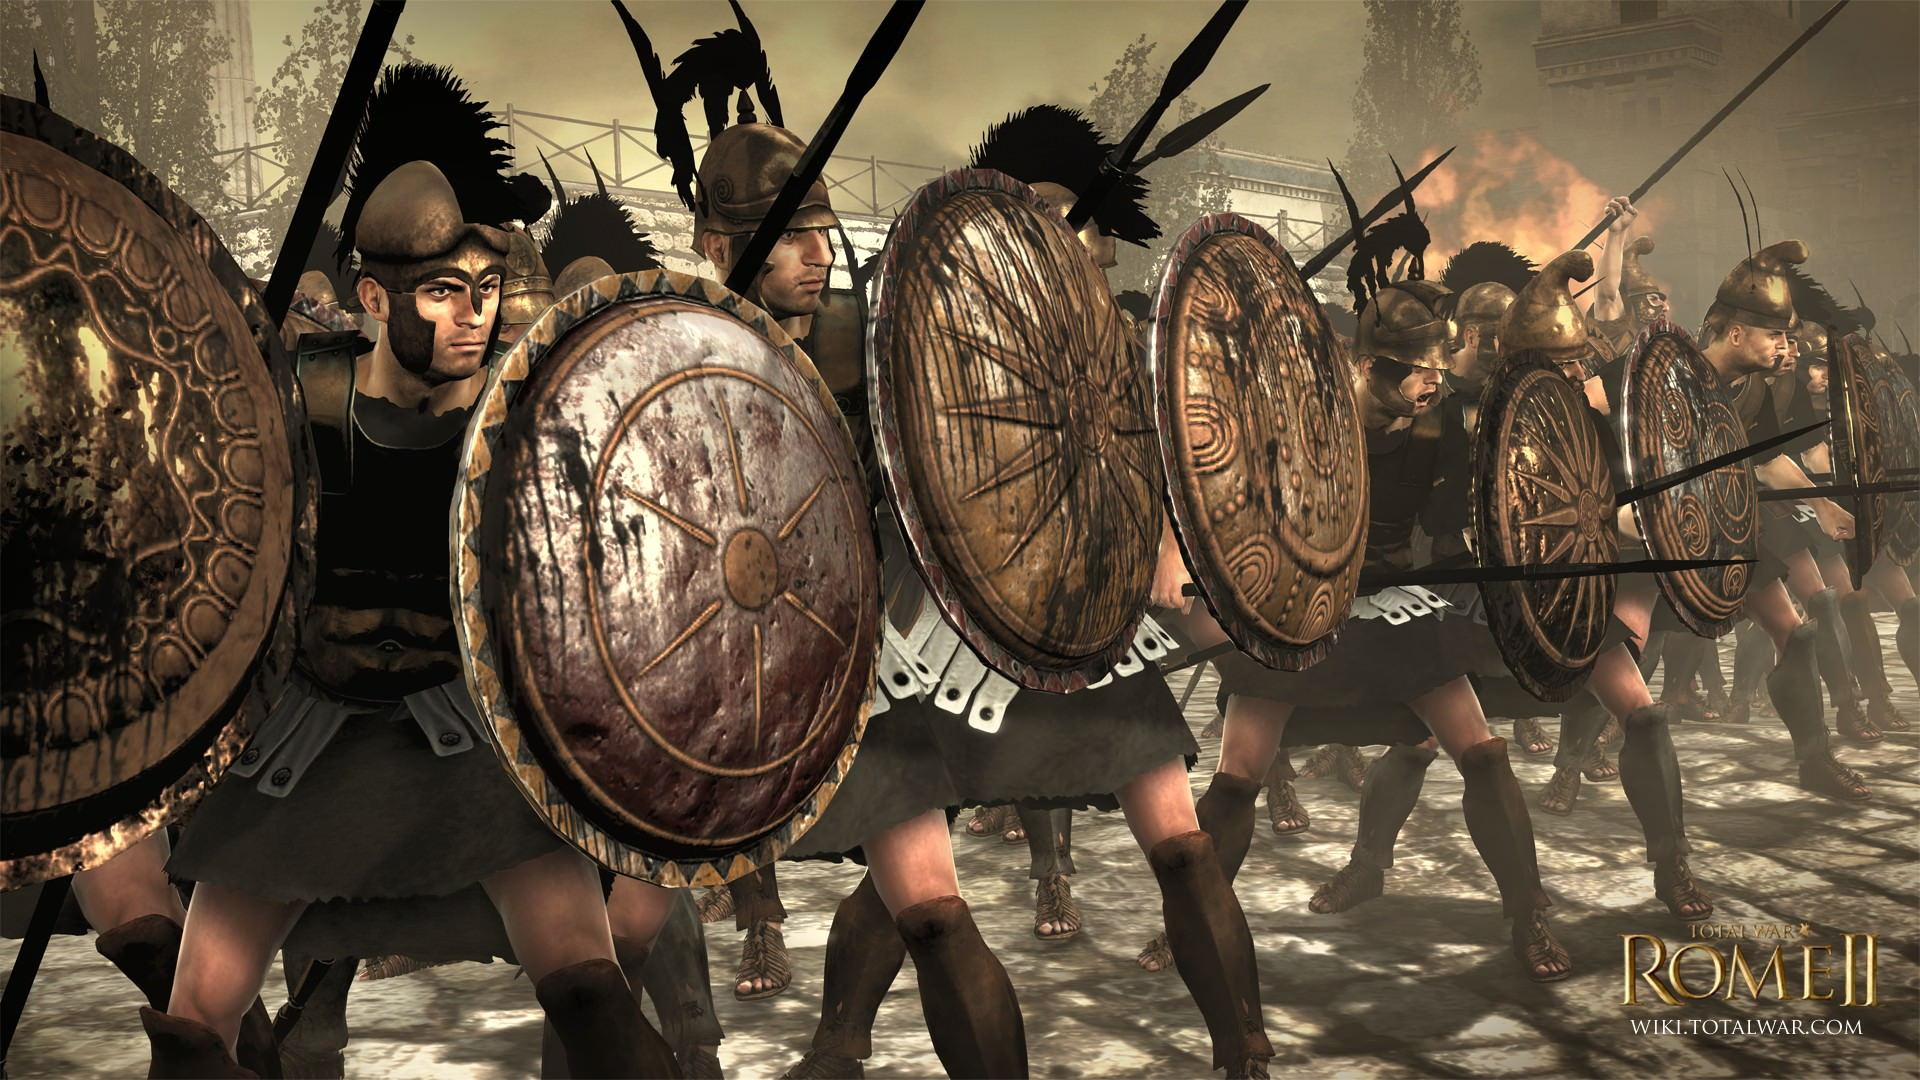 Why Did Spartans Need A Strong Army